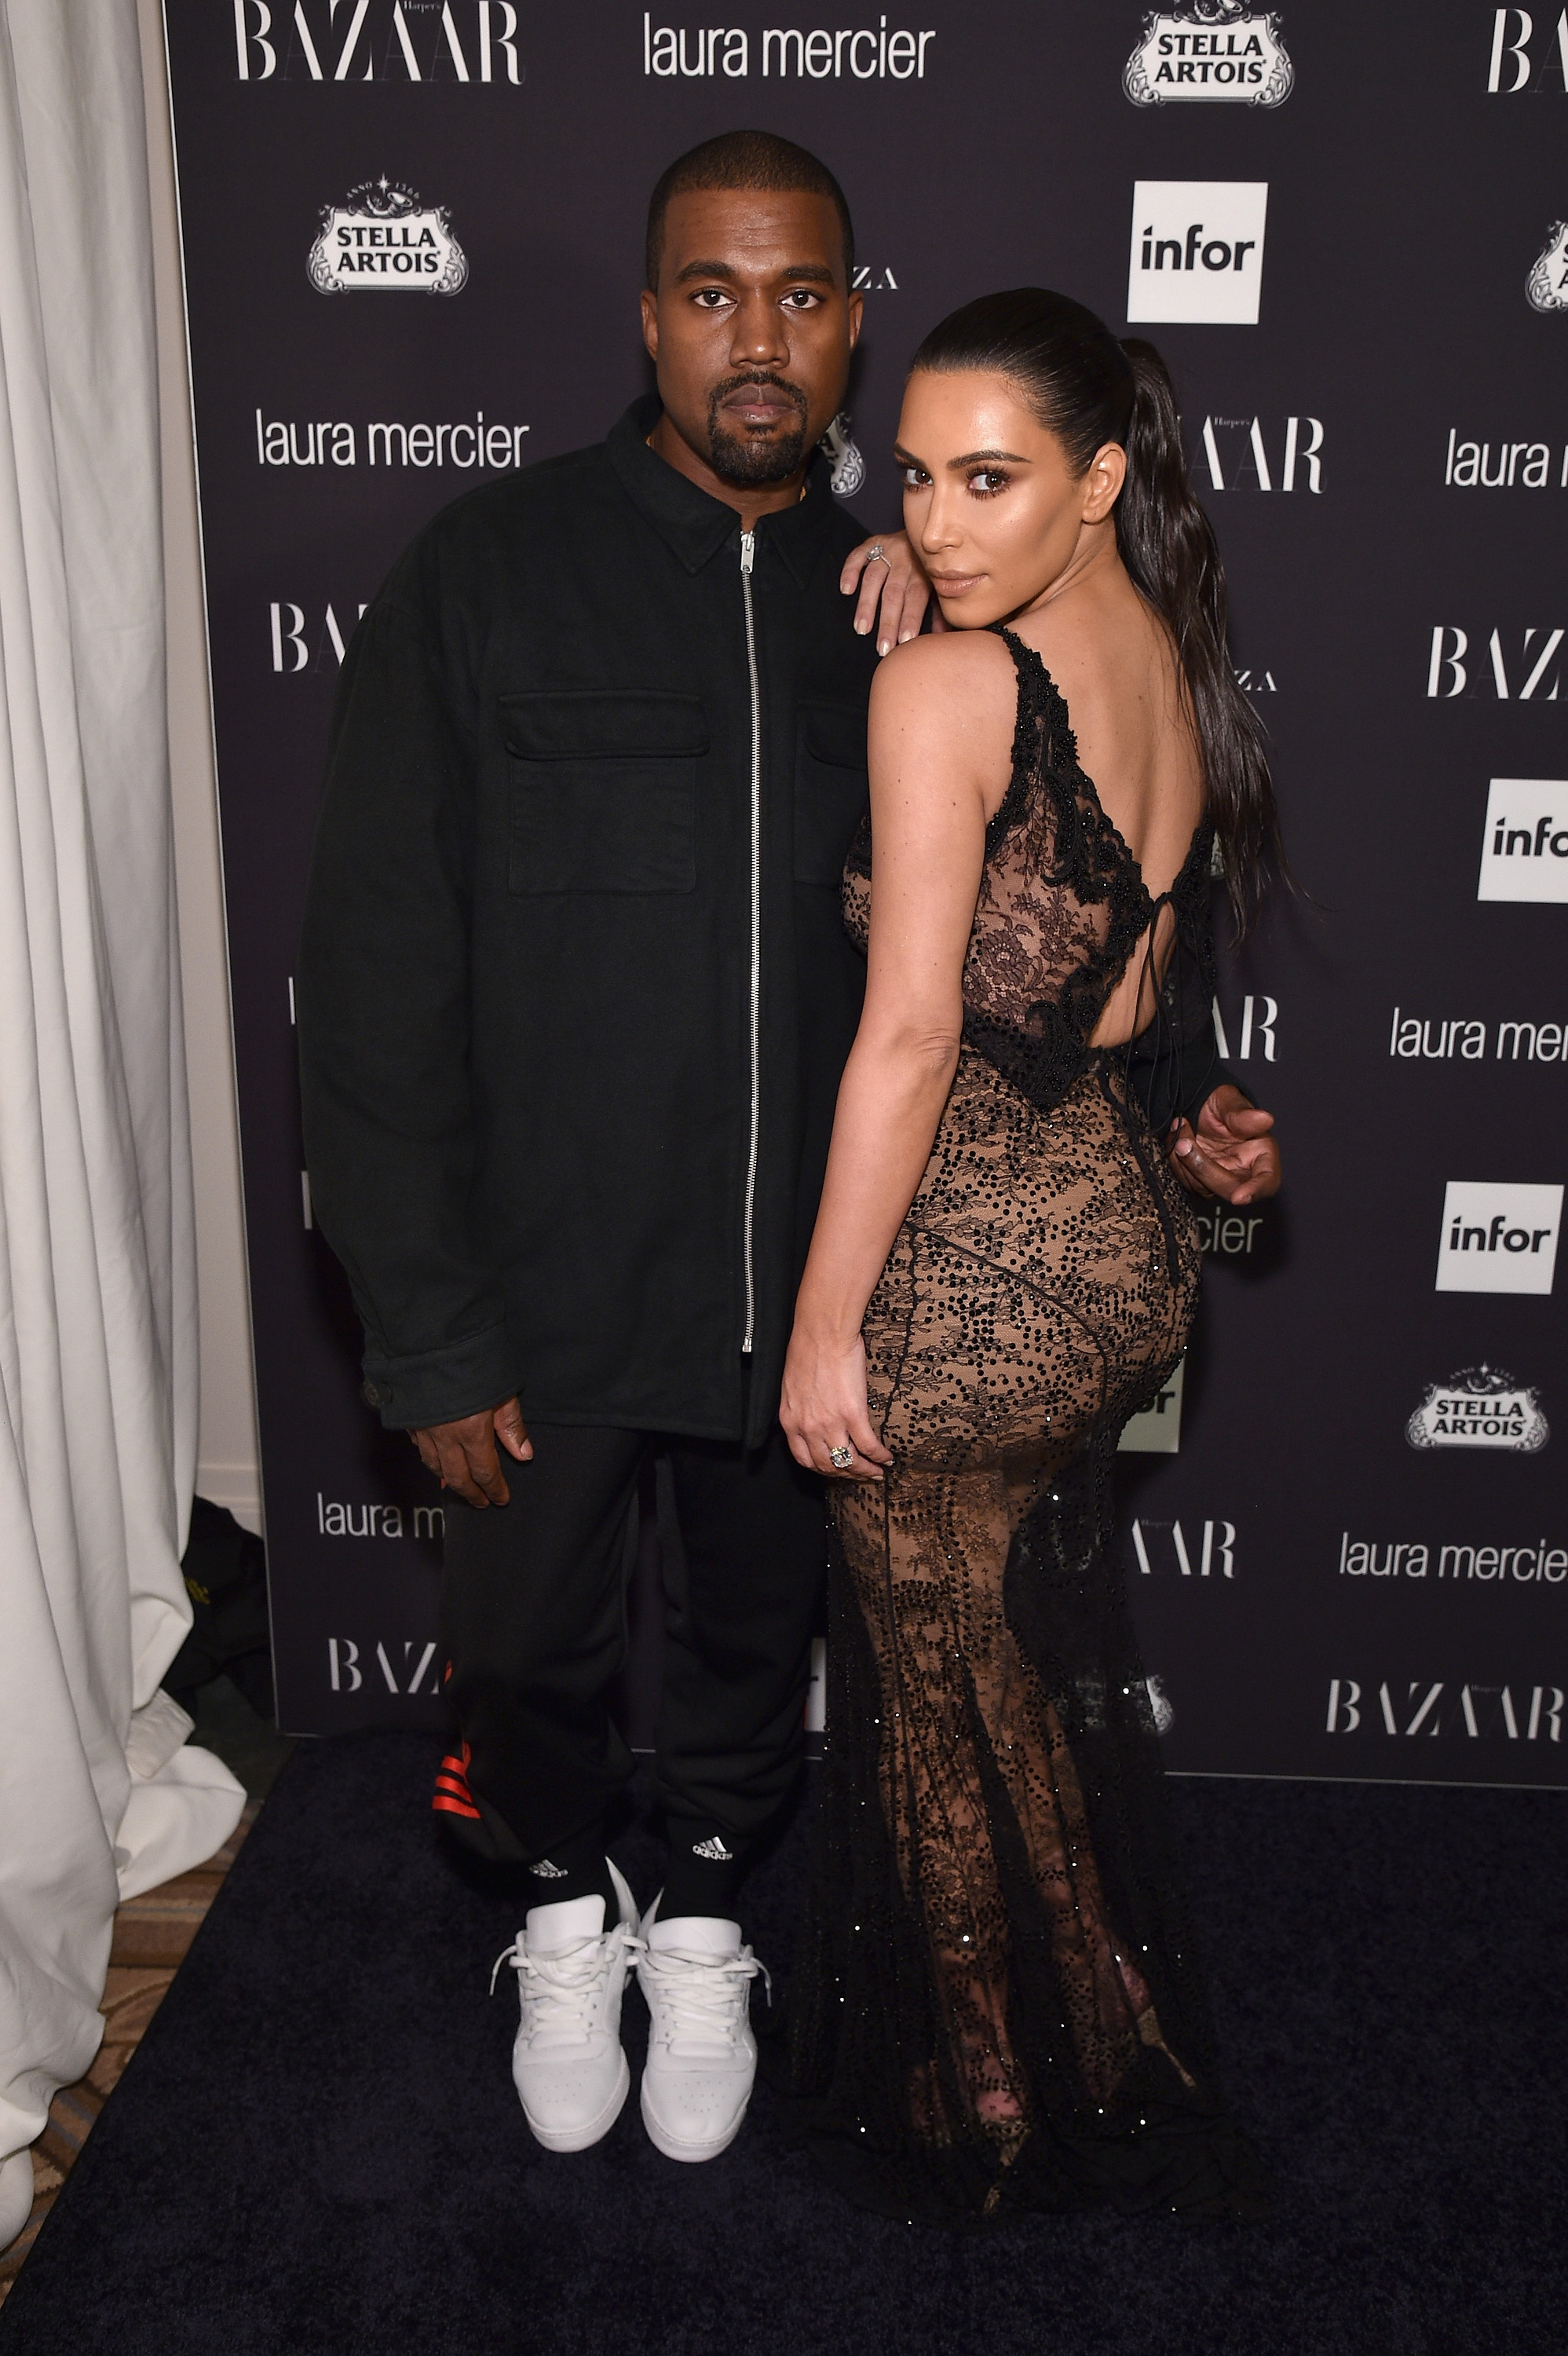 Kanye West and Kim Kardashian West attend Harper's Bazaar's celebration of 'ICONS By Carine Roitfeld' presented by Infor, Laura Mercier, and Stella Artois at The Plaza Hotel on September 9, 2016, in New York City. (Getty)